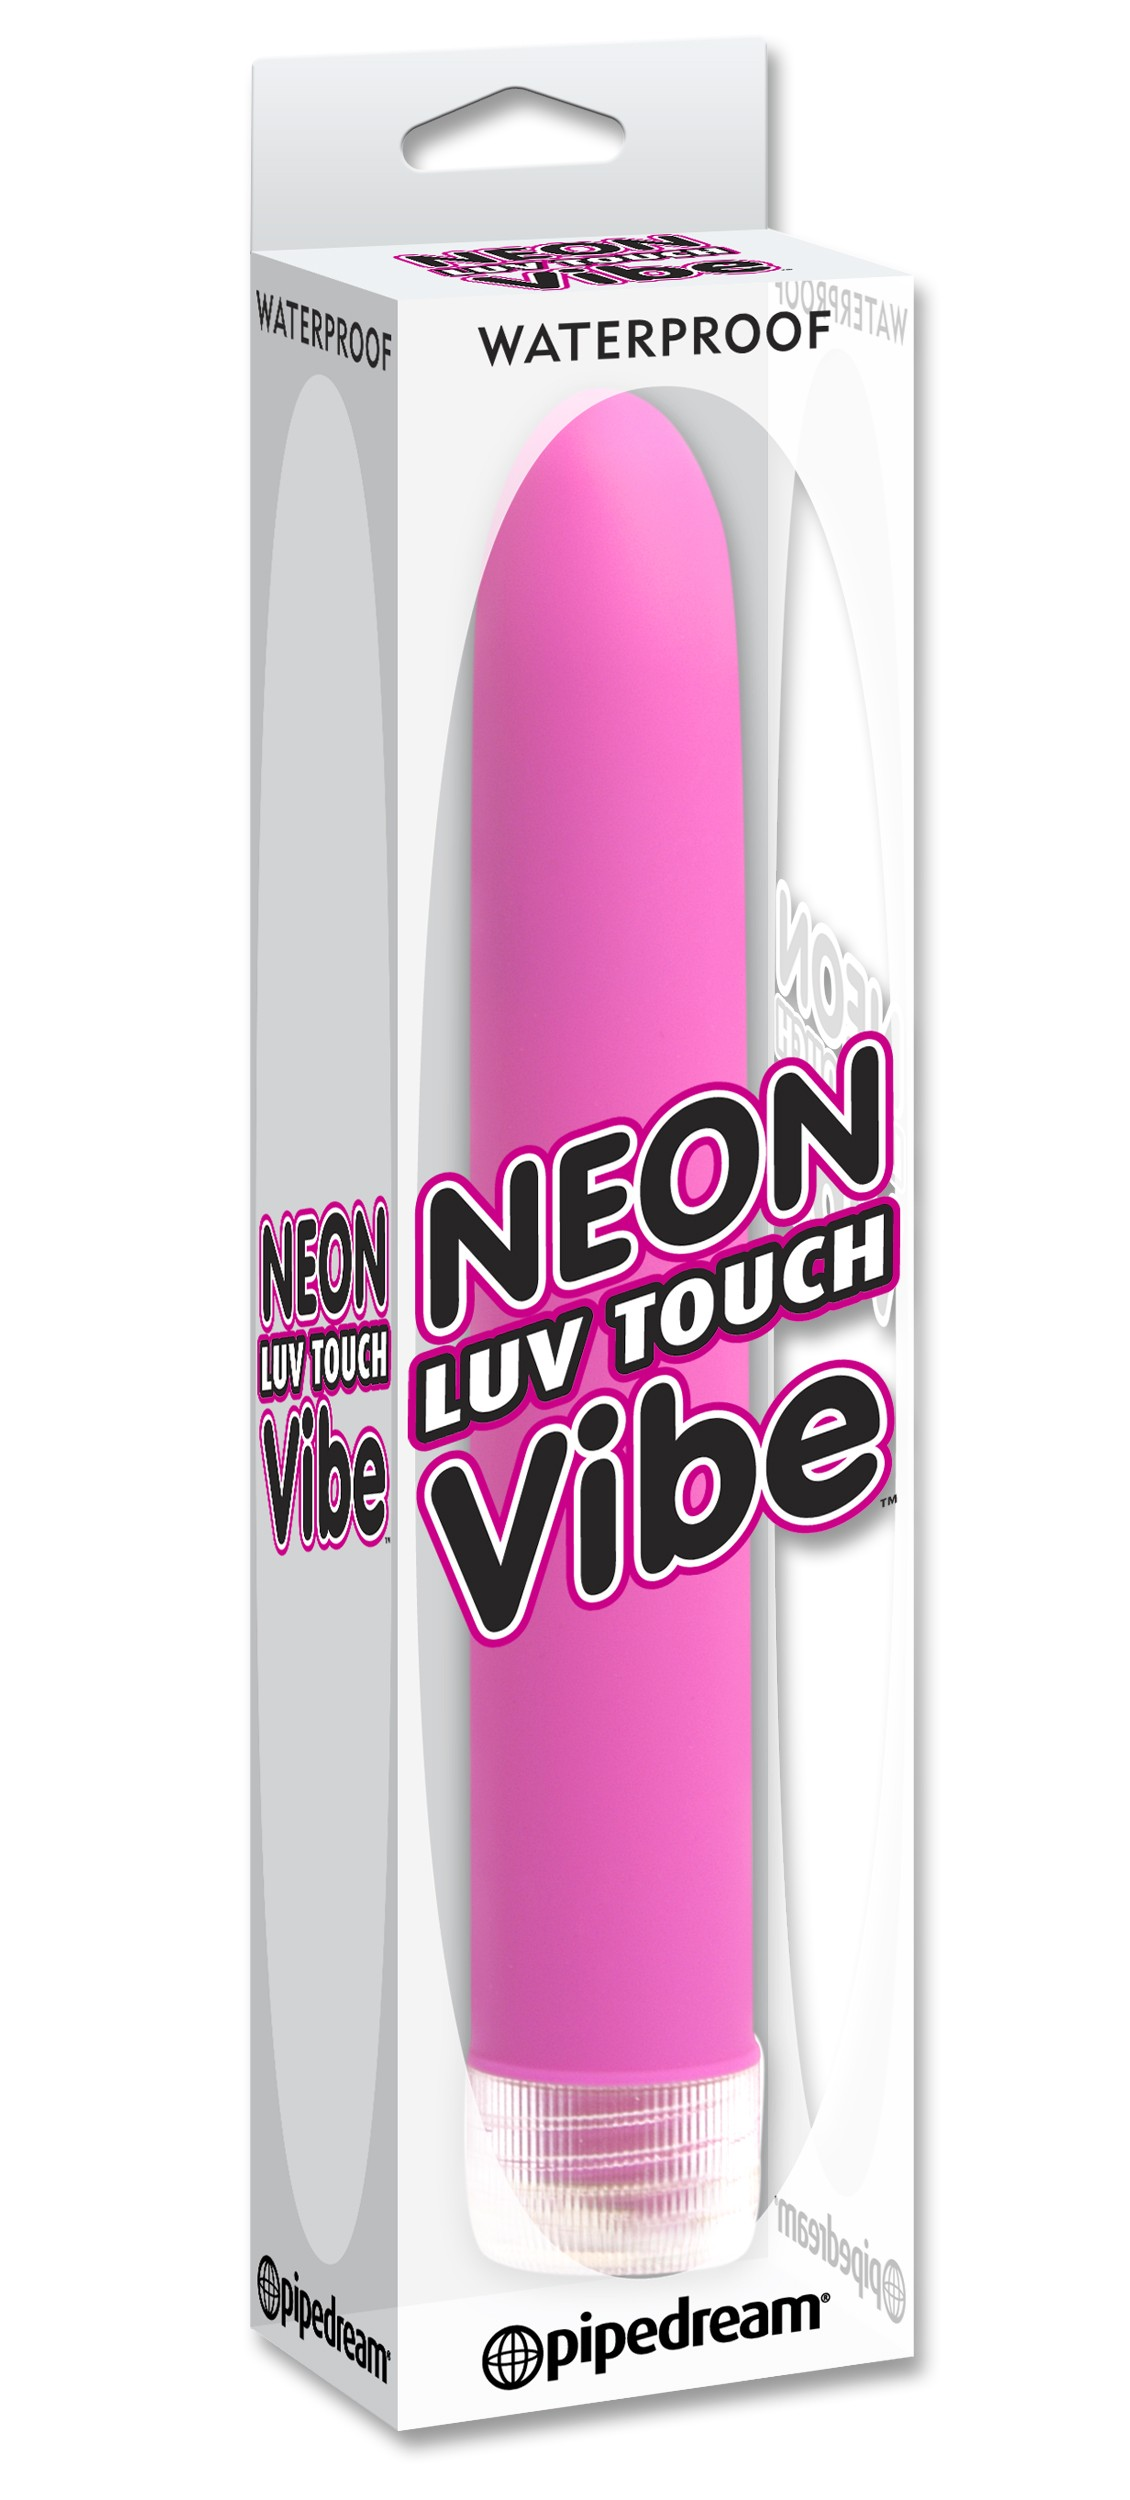 NEON LUV TOUCH VIBE - PINK